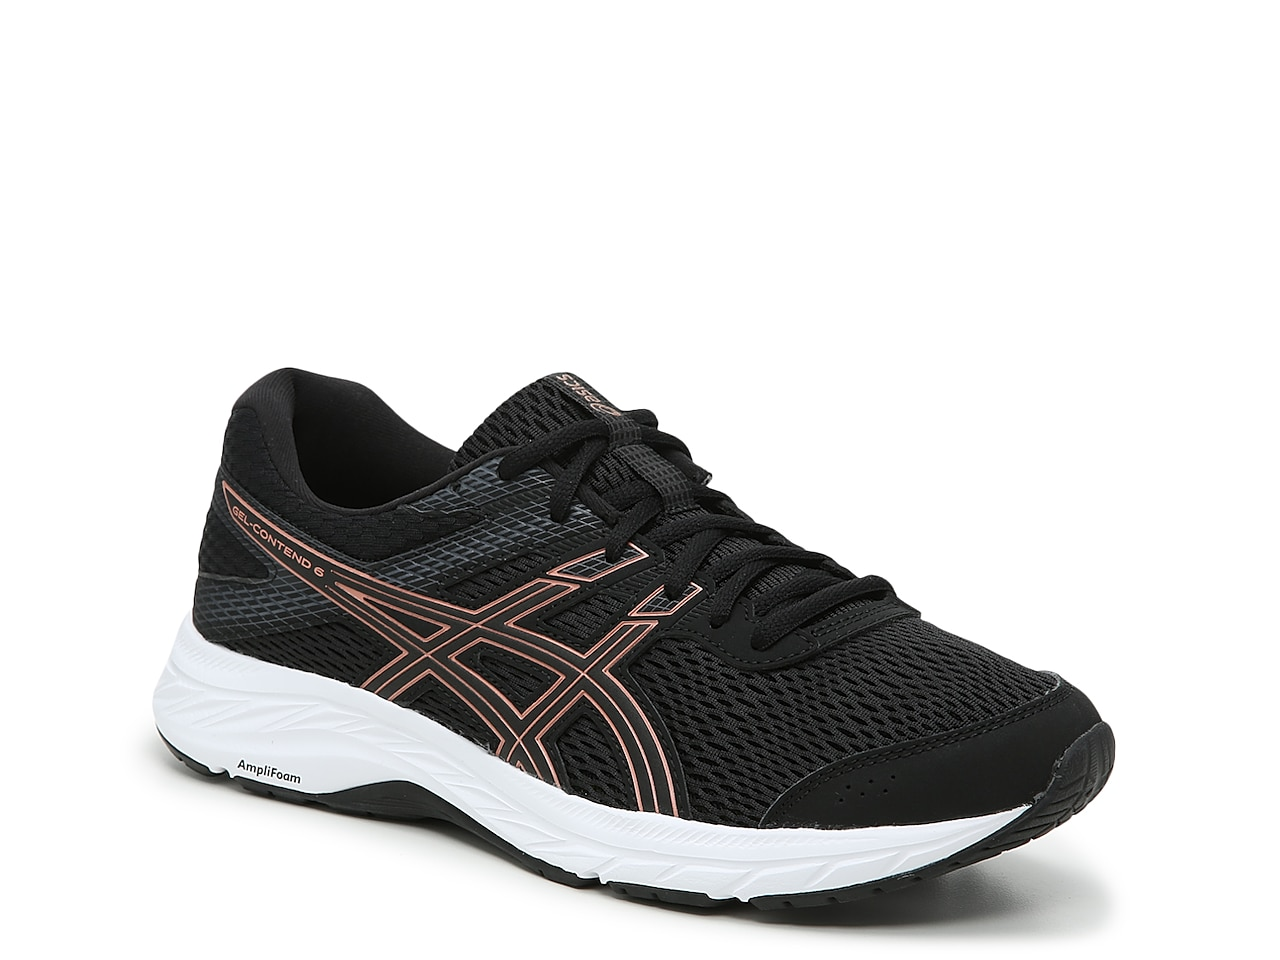 GEL-Contend 6 Running Shoe - Women's